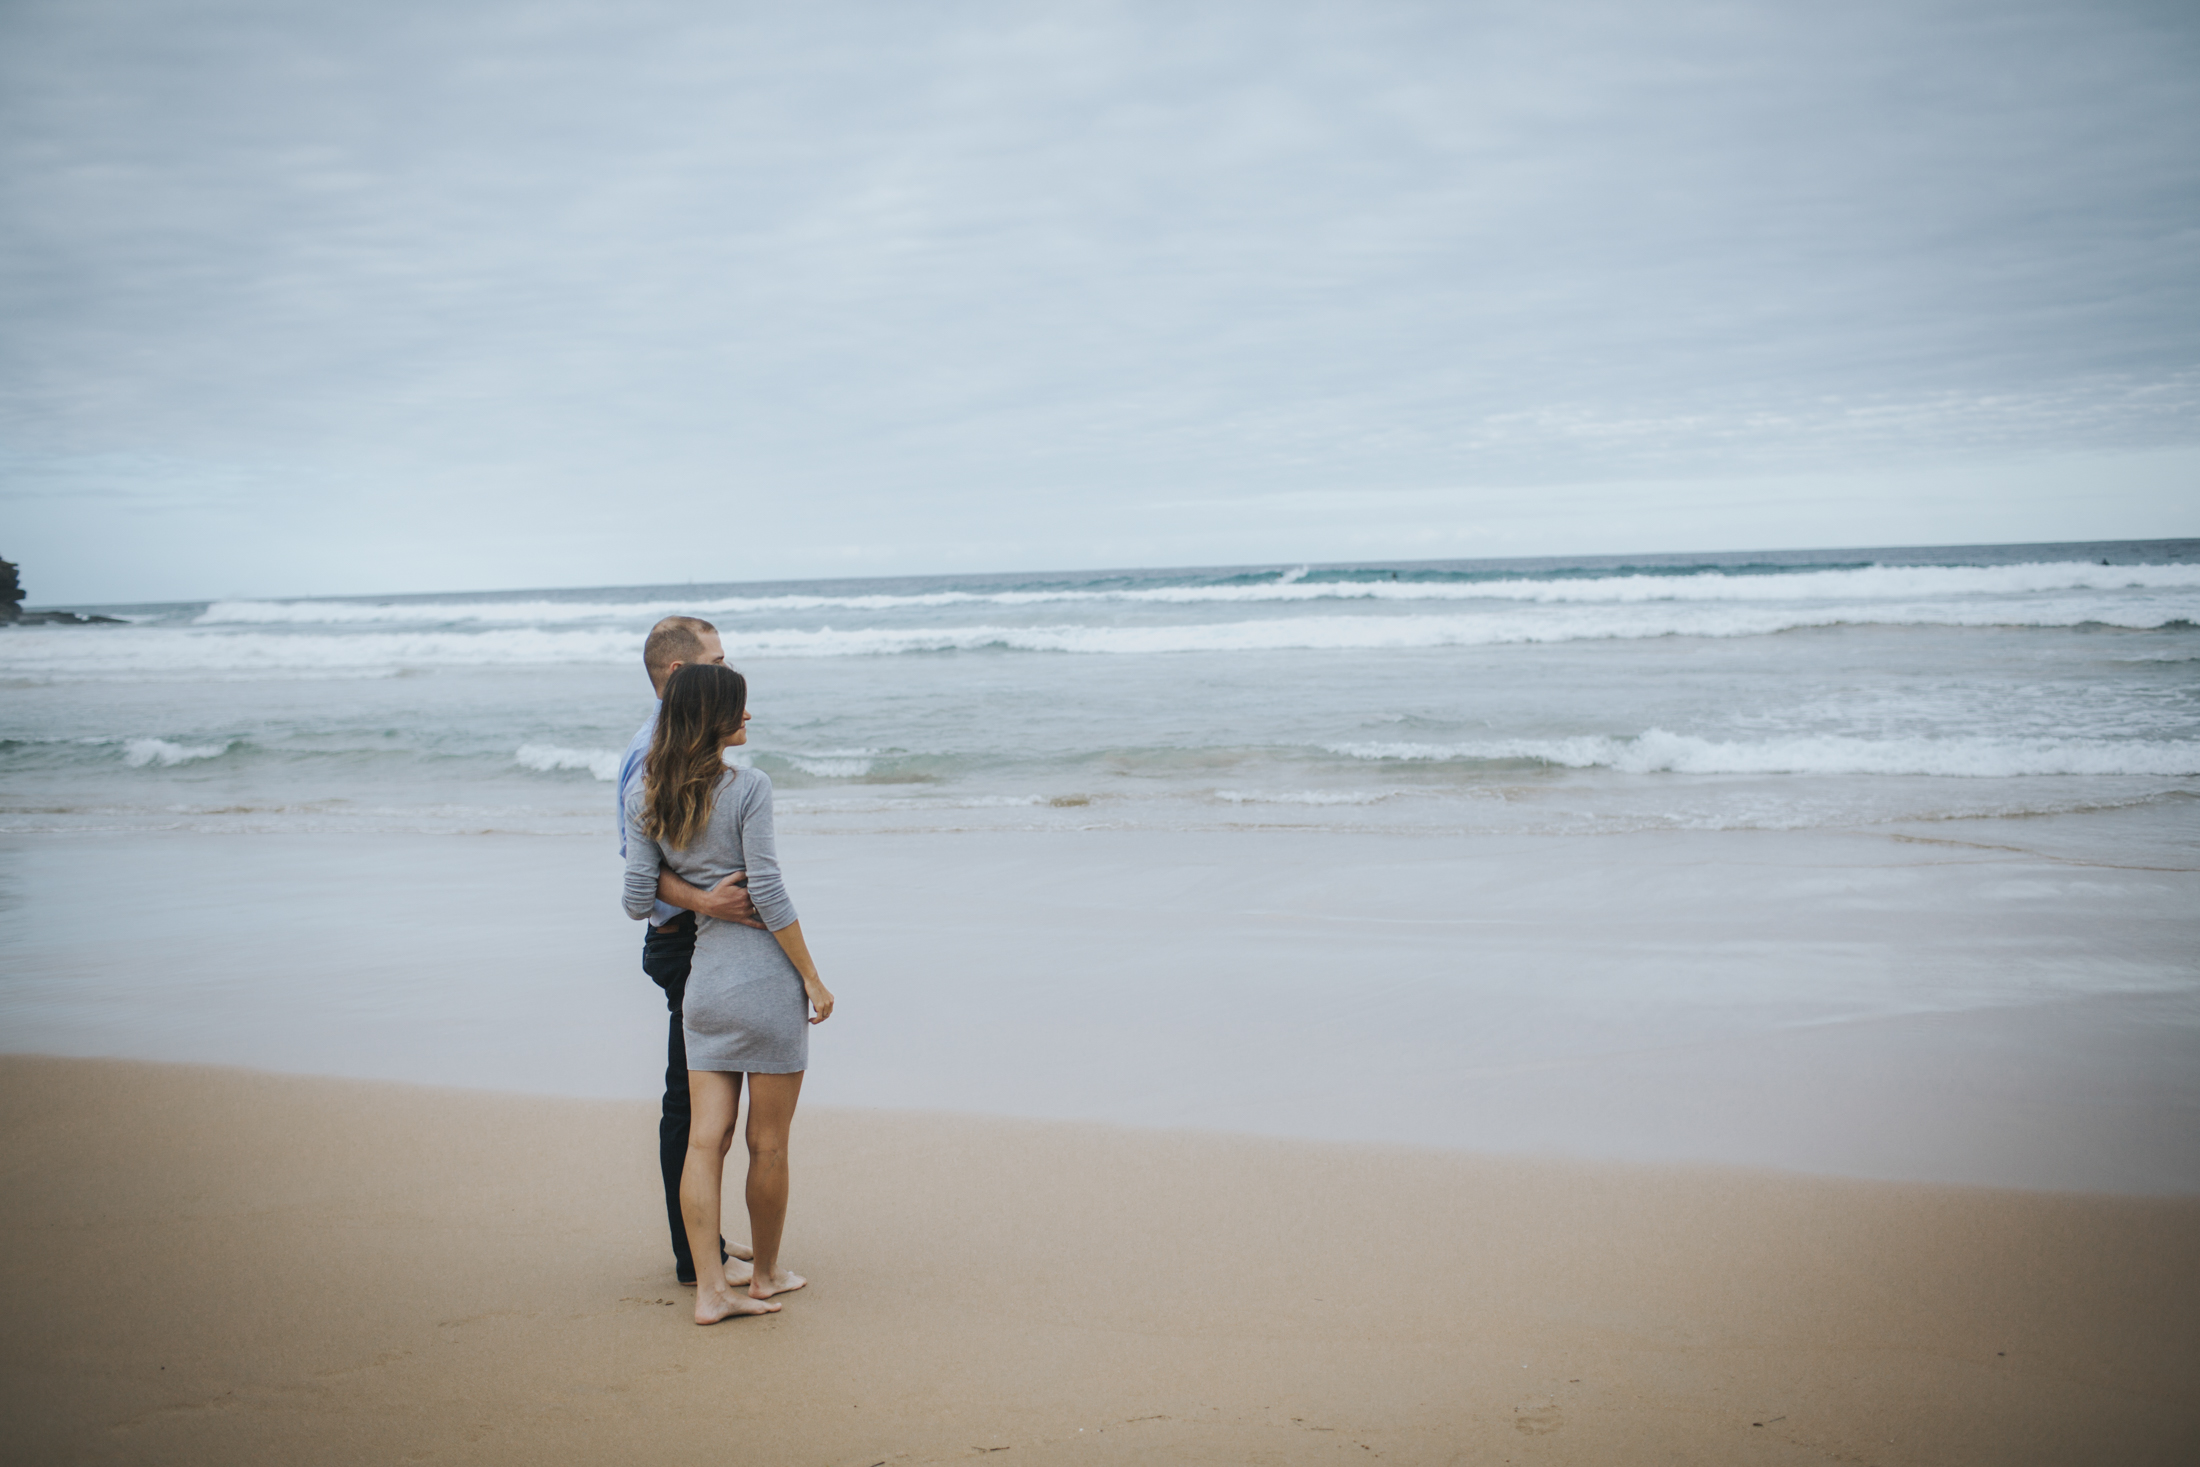 sheridan_nilsson_northern_beaches_family_photographer_maternity.-1713.jpg